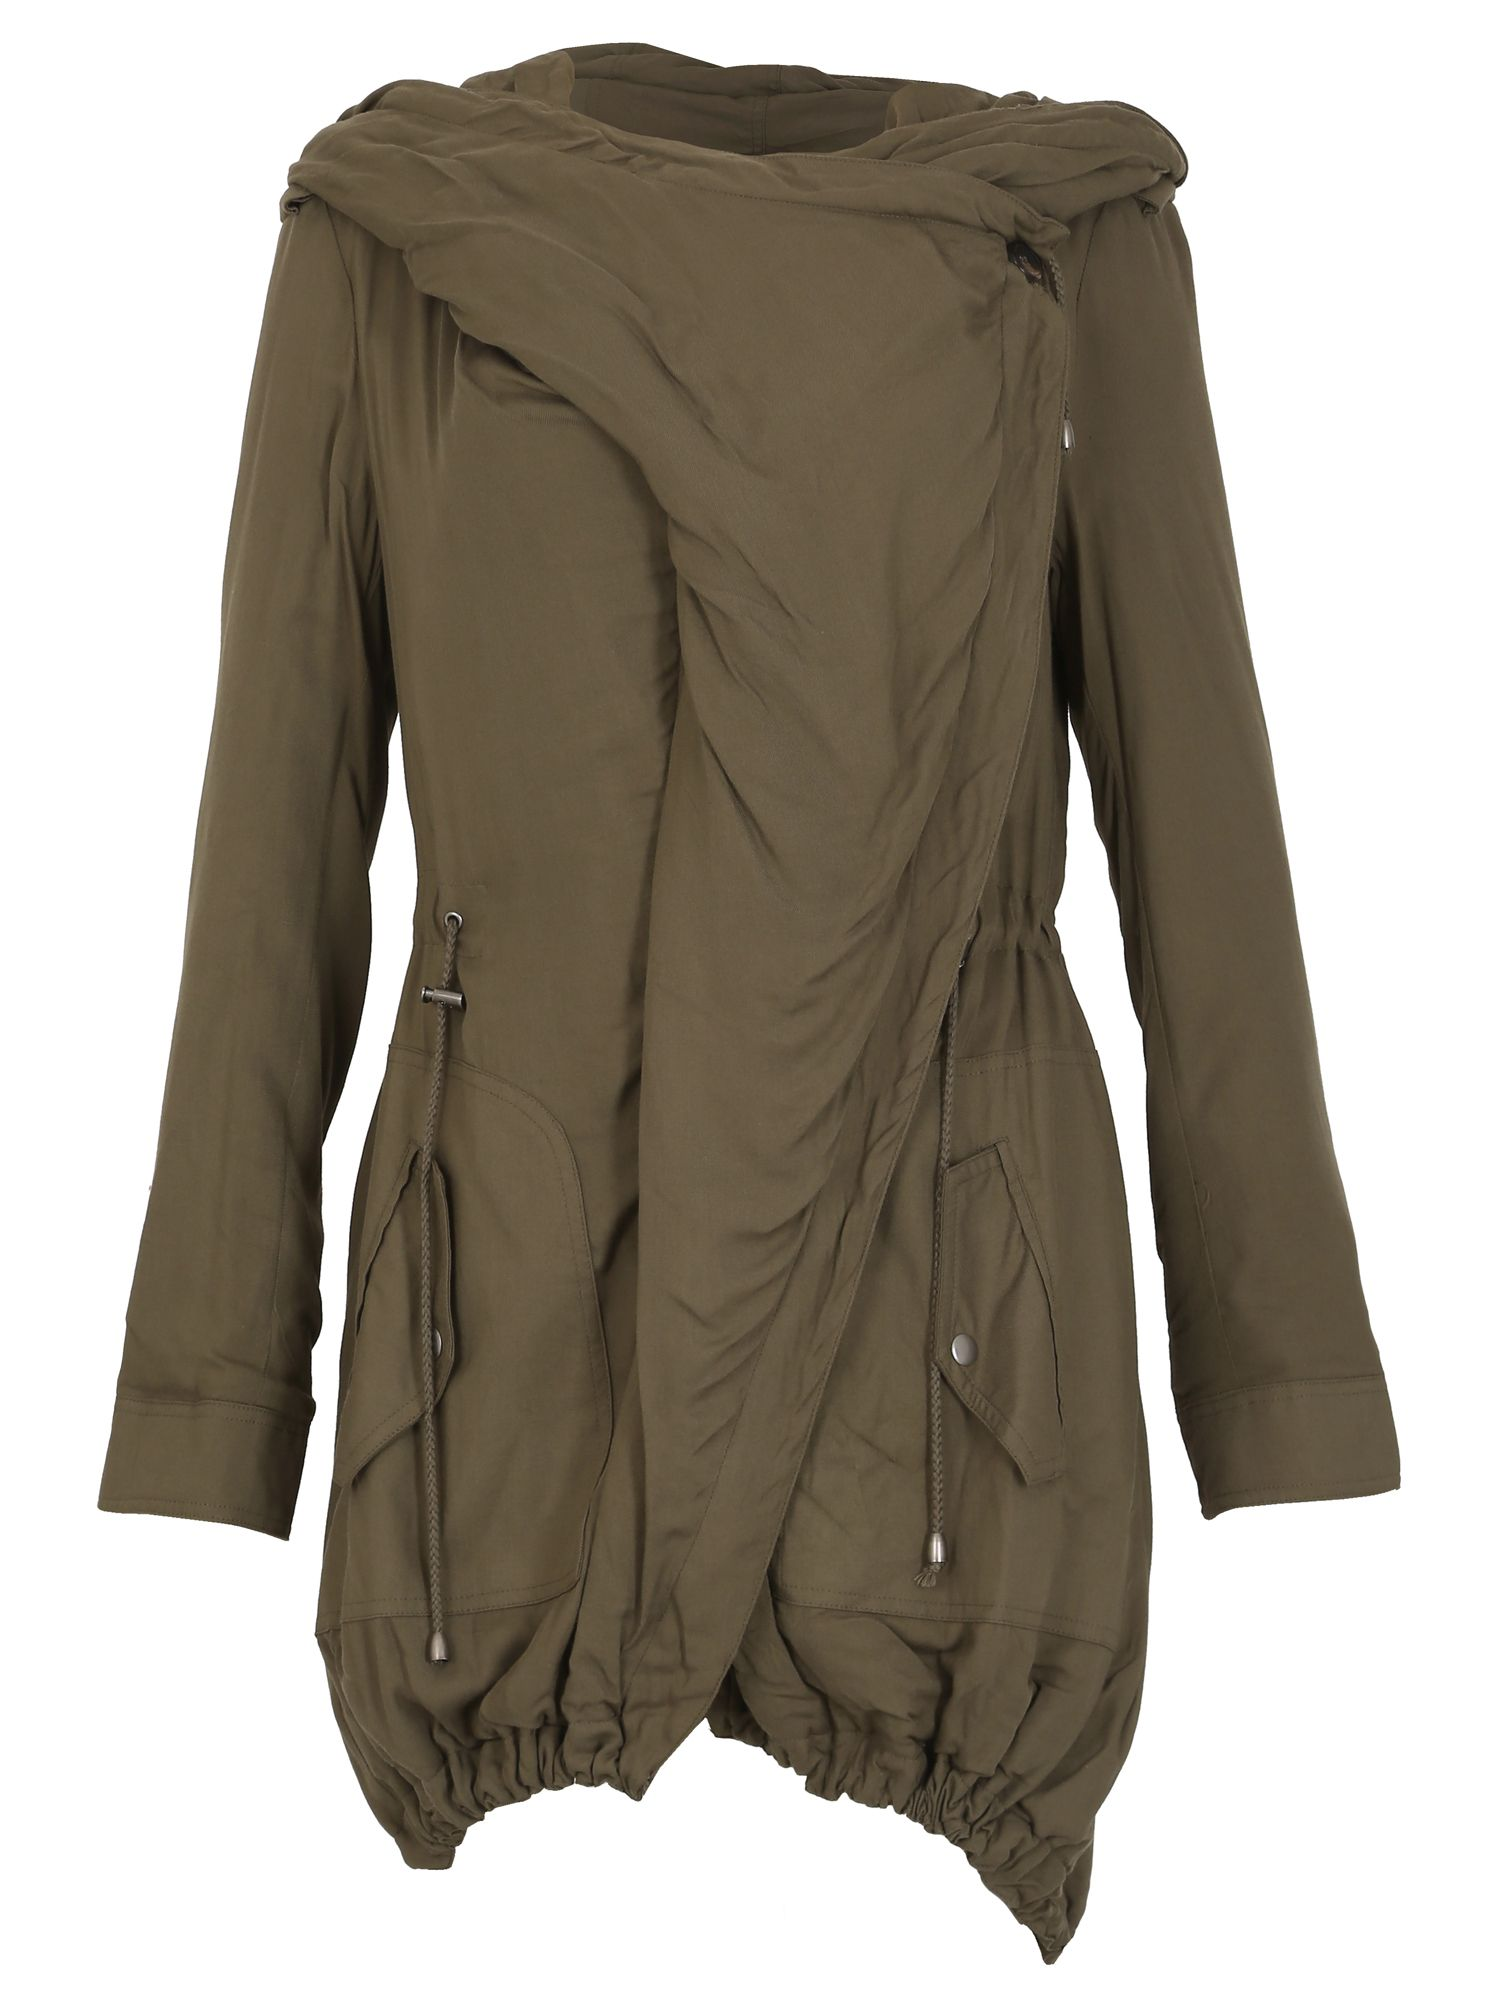 David Barry Waterfall Parka Casual Jacket, Khaki